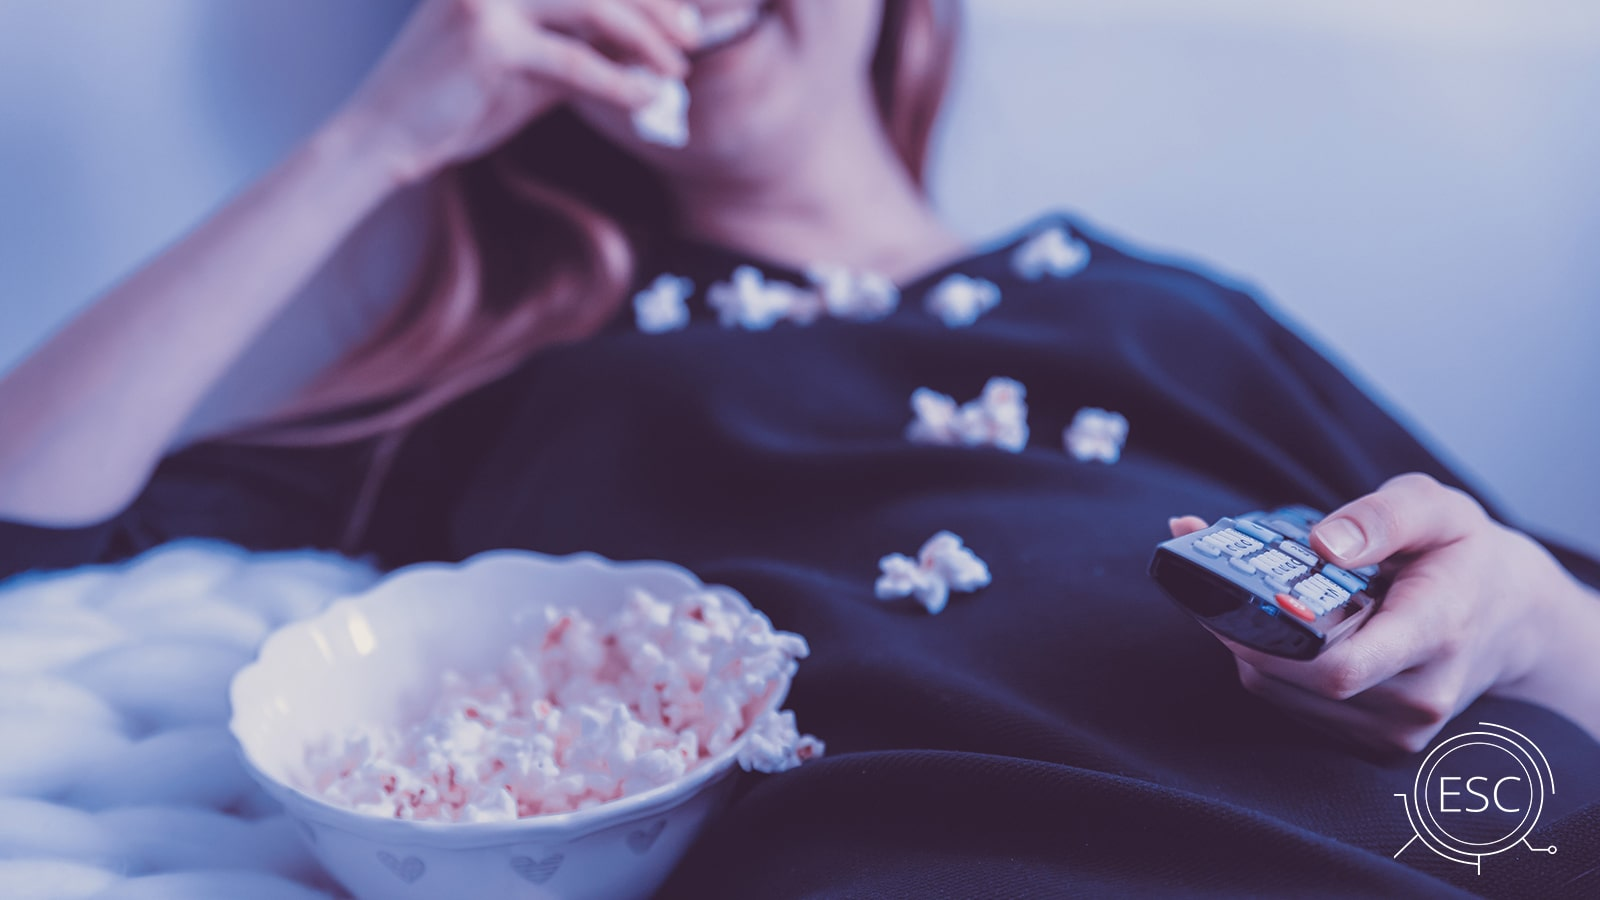 Where can I watch movies online for free without registering